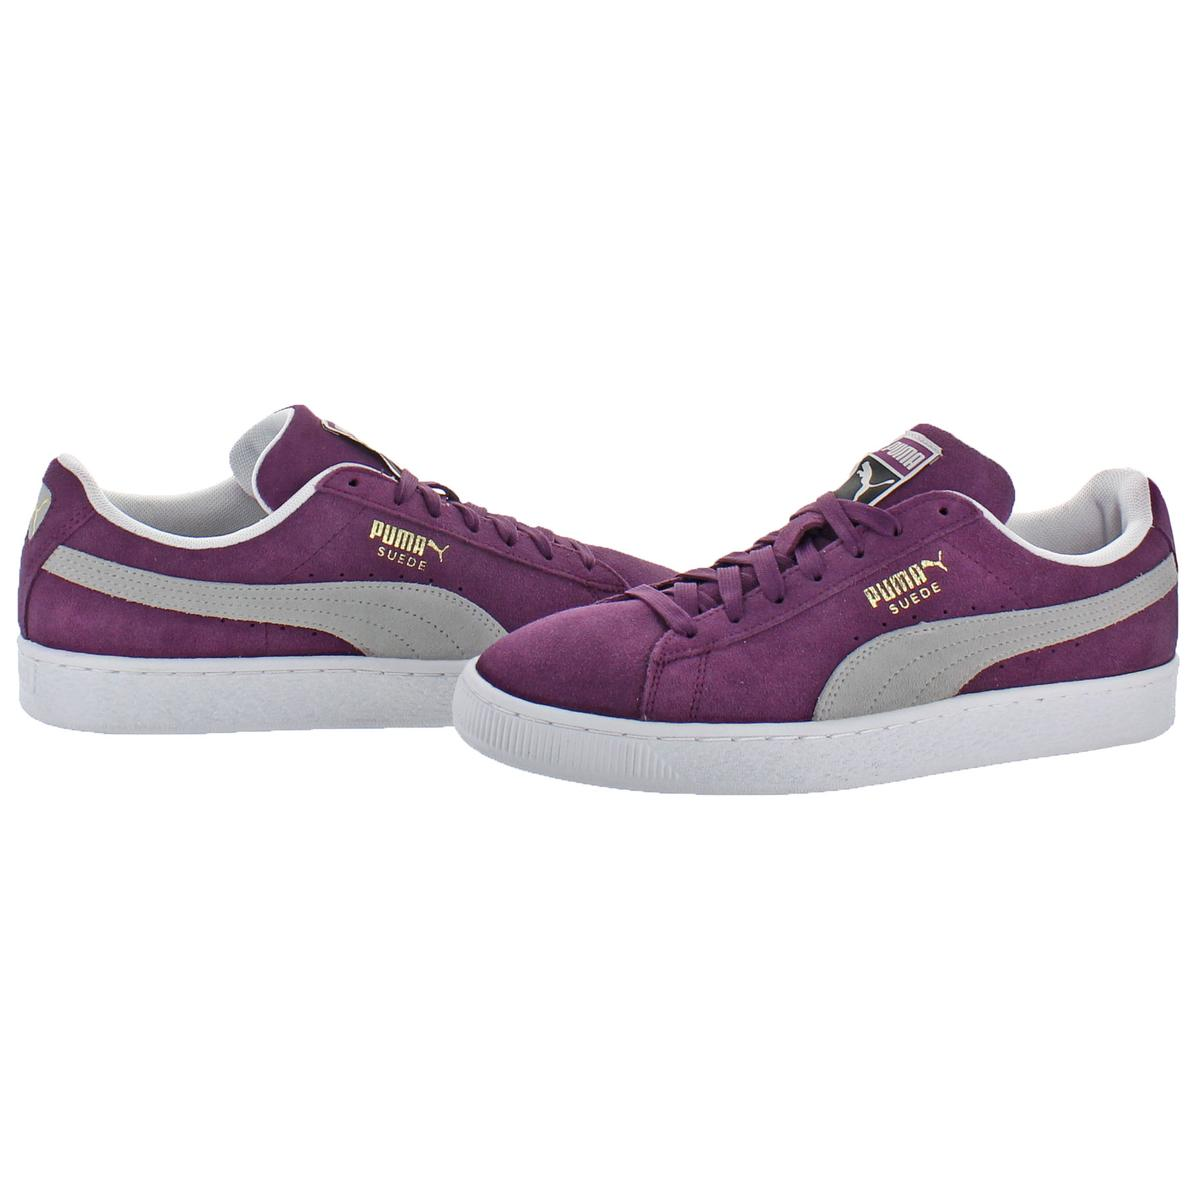 Puma-Suede-Classic-Men-039-s-Fashion-Sneakers-Shoes thumbnail 15